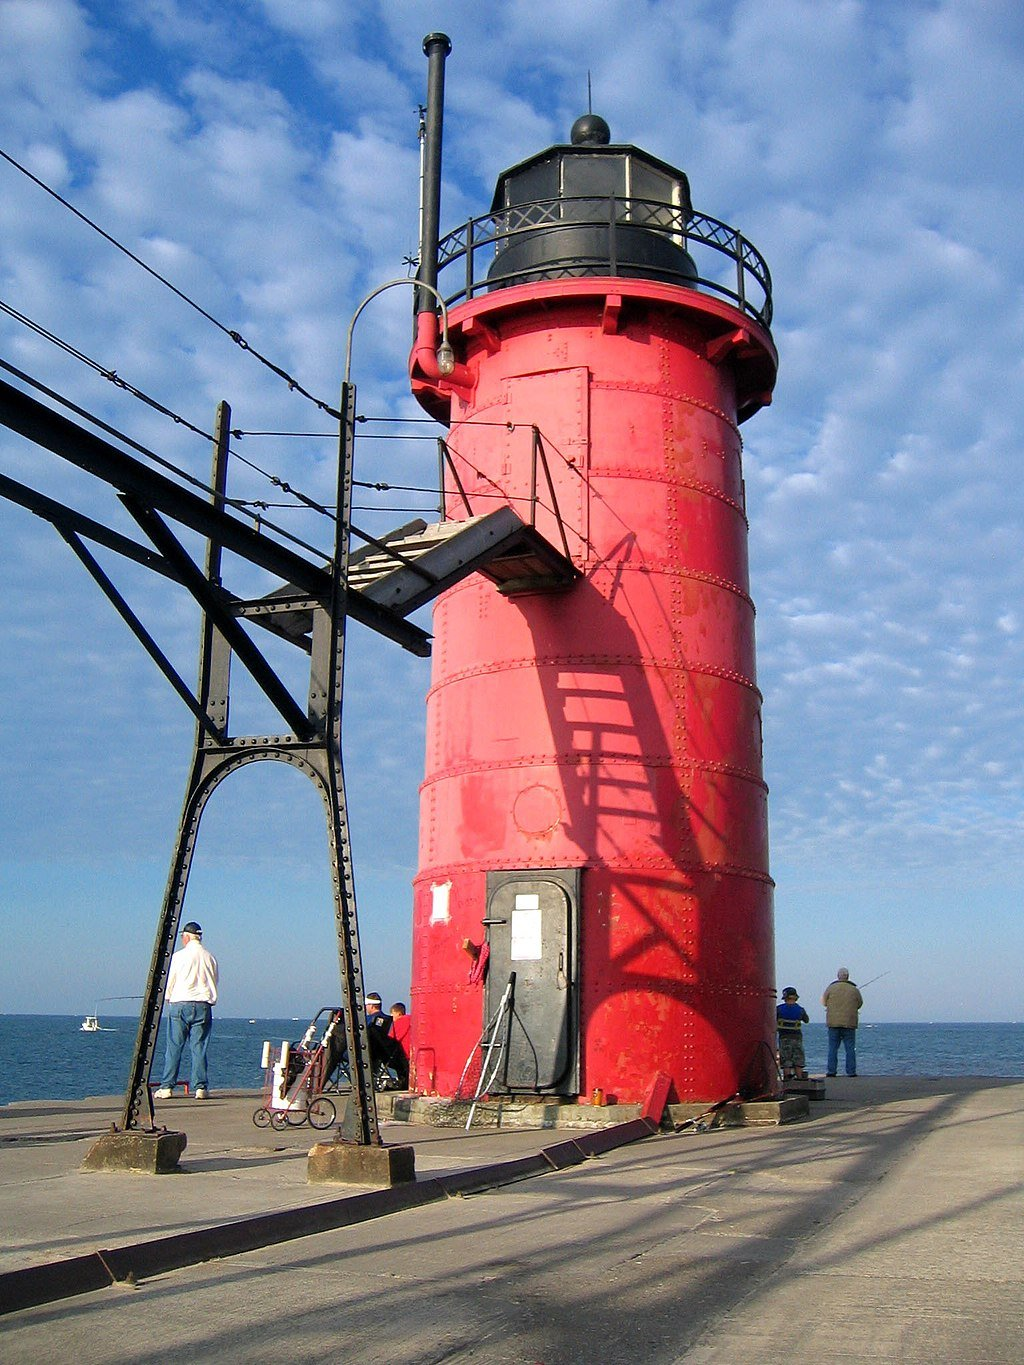 The South Haven Light was built in 1903 and remains an active navigational aid today.